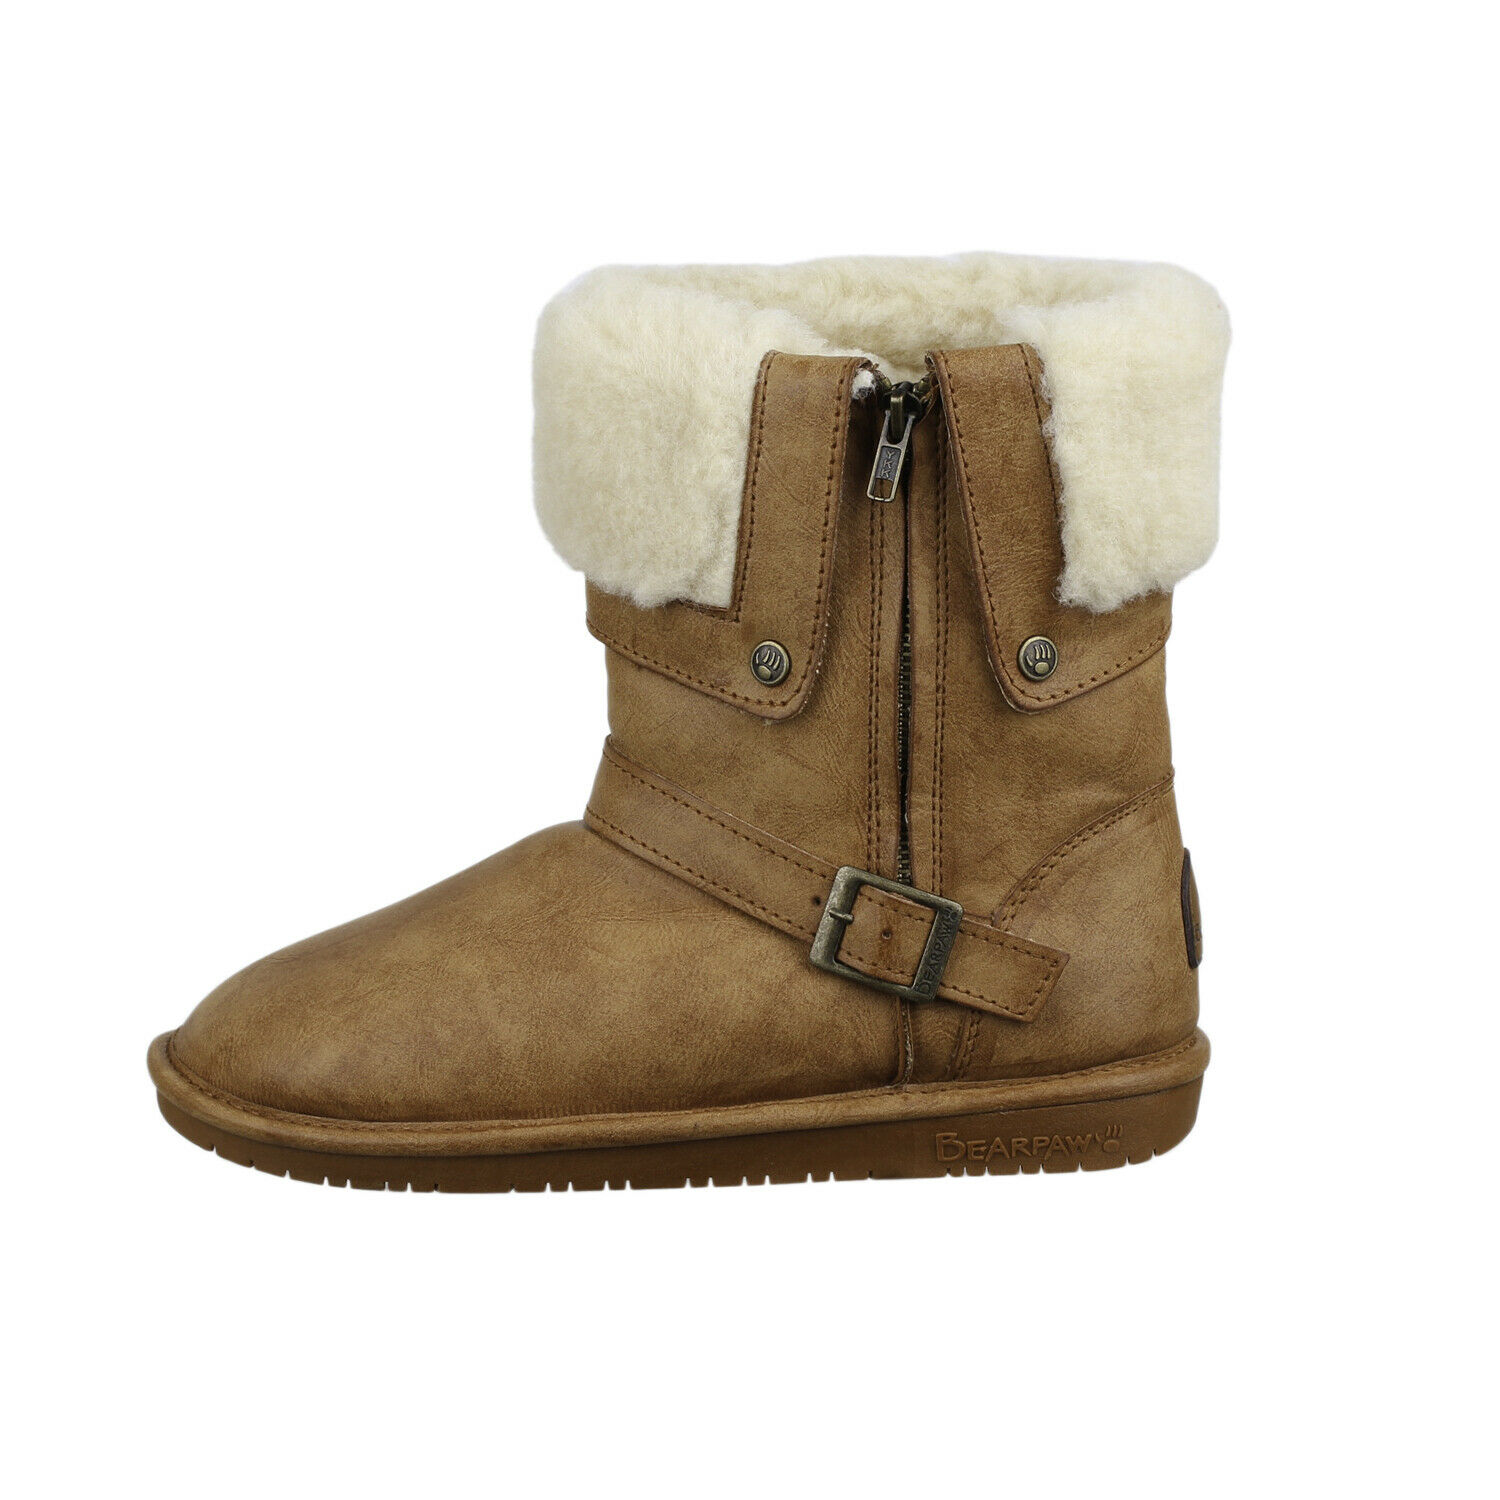 Bearpaw Women's Madison 1808W Snow Boots shoes Brown Sheepskin